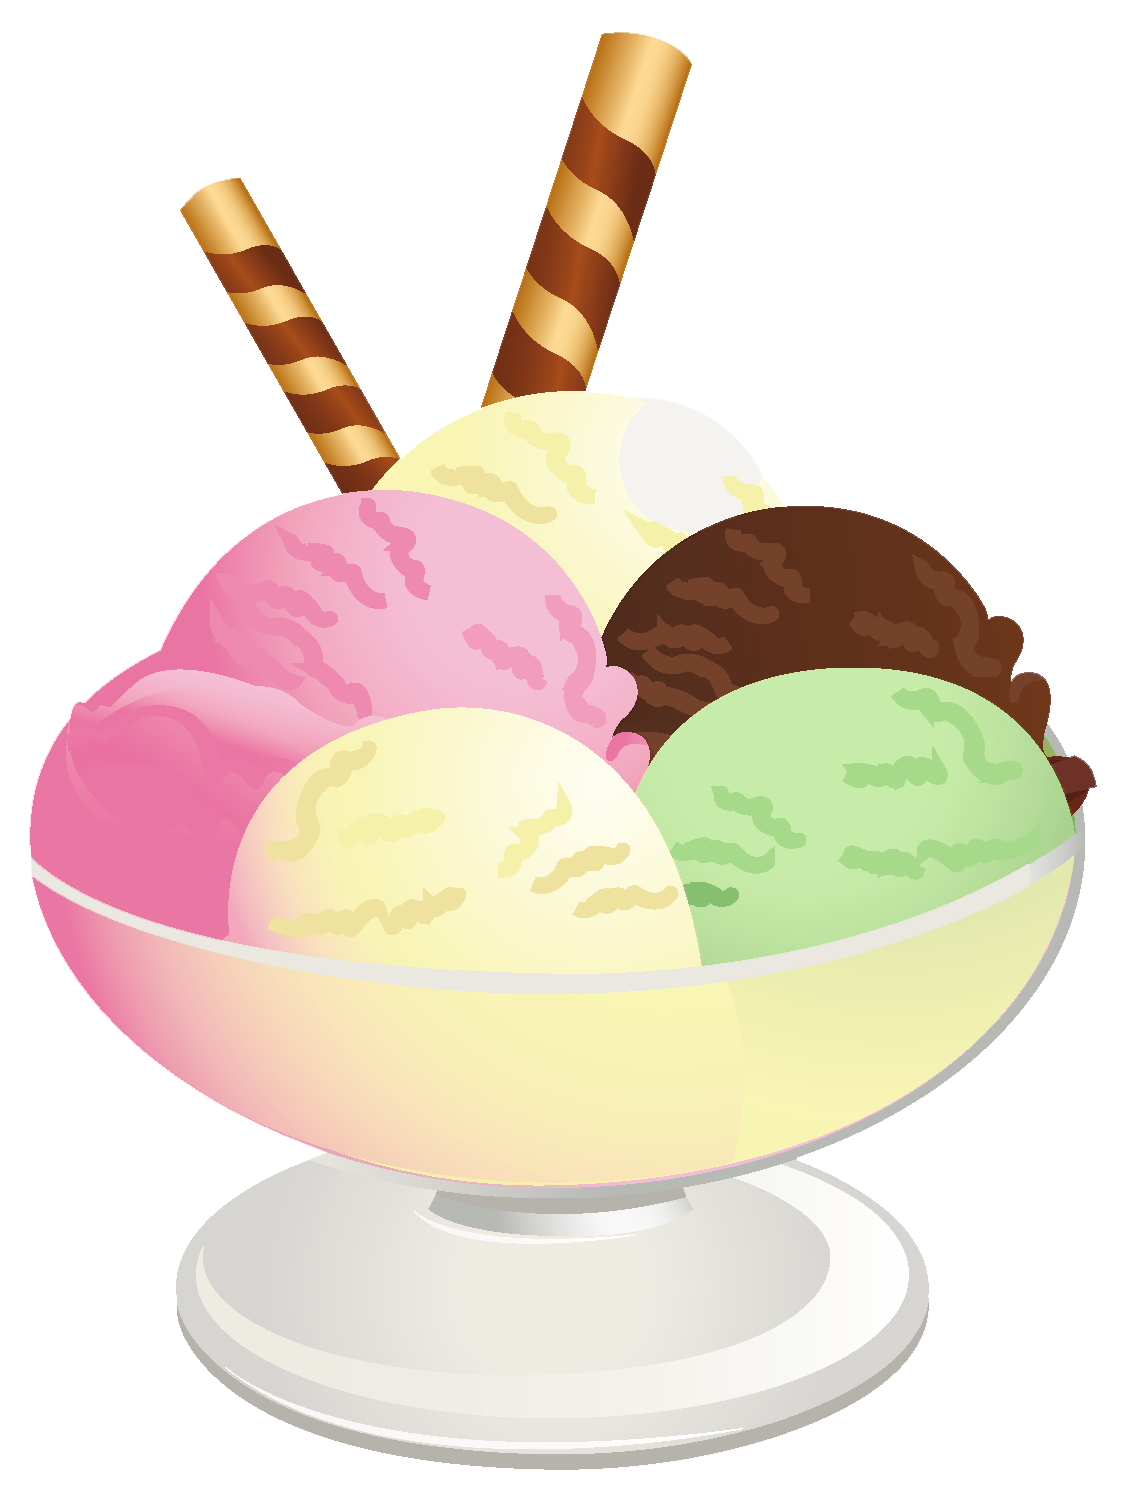 Ice cream sundae png. Doughnut clipart sugary food